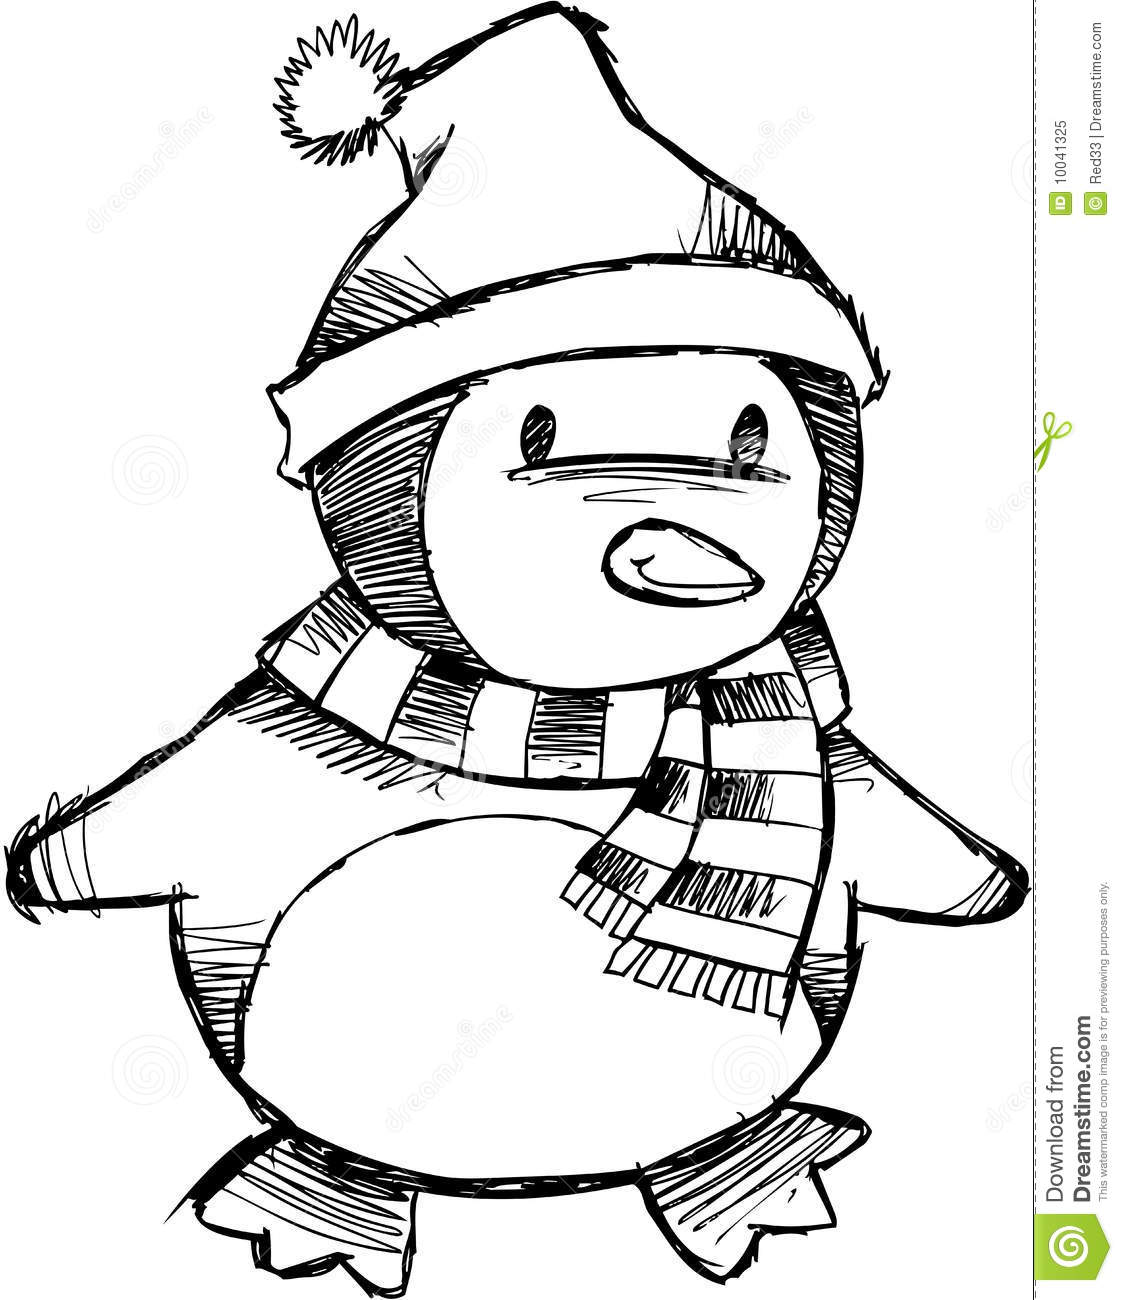 Line Drawing Ideas Ks : Sketchy christmas penguin vector stock